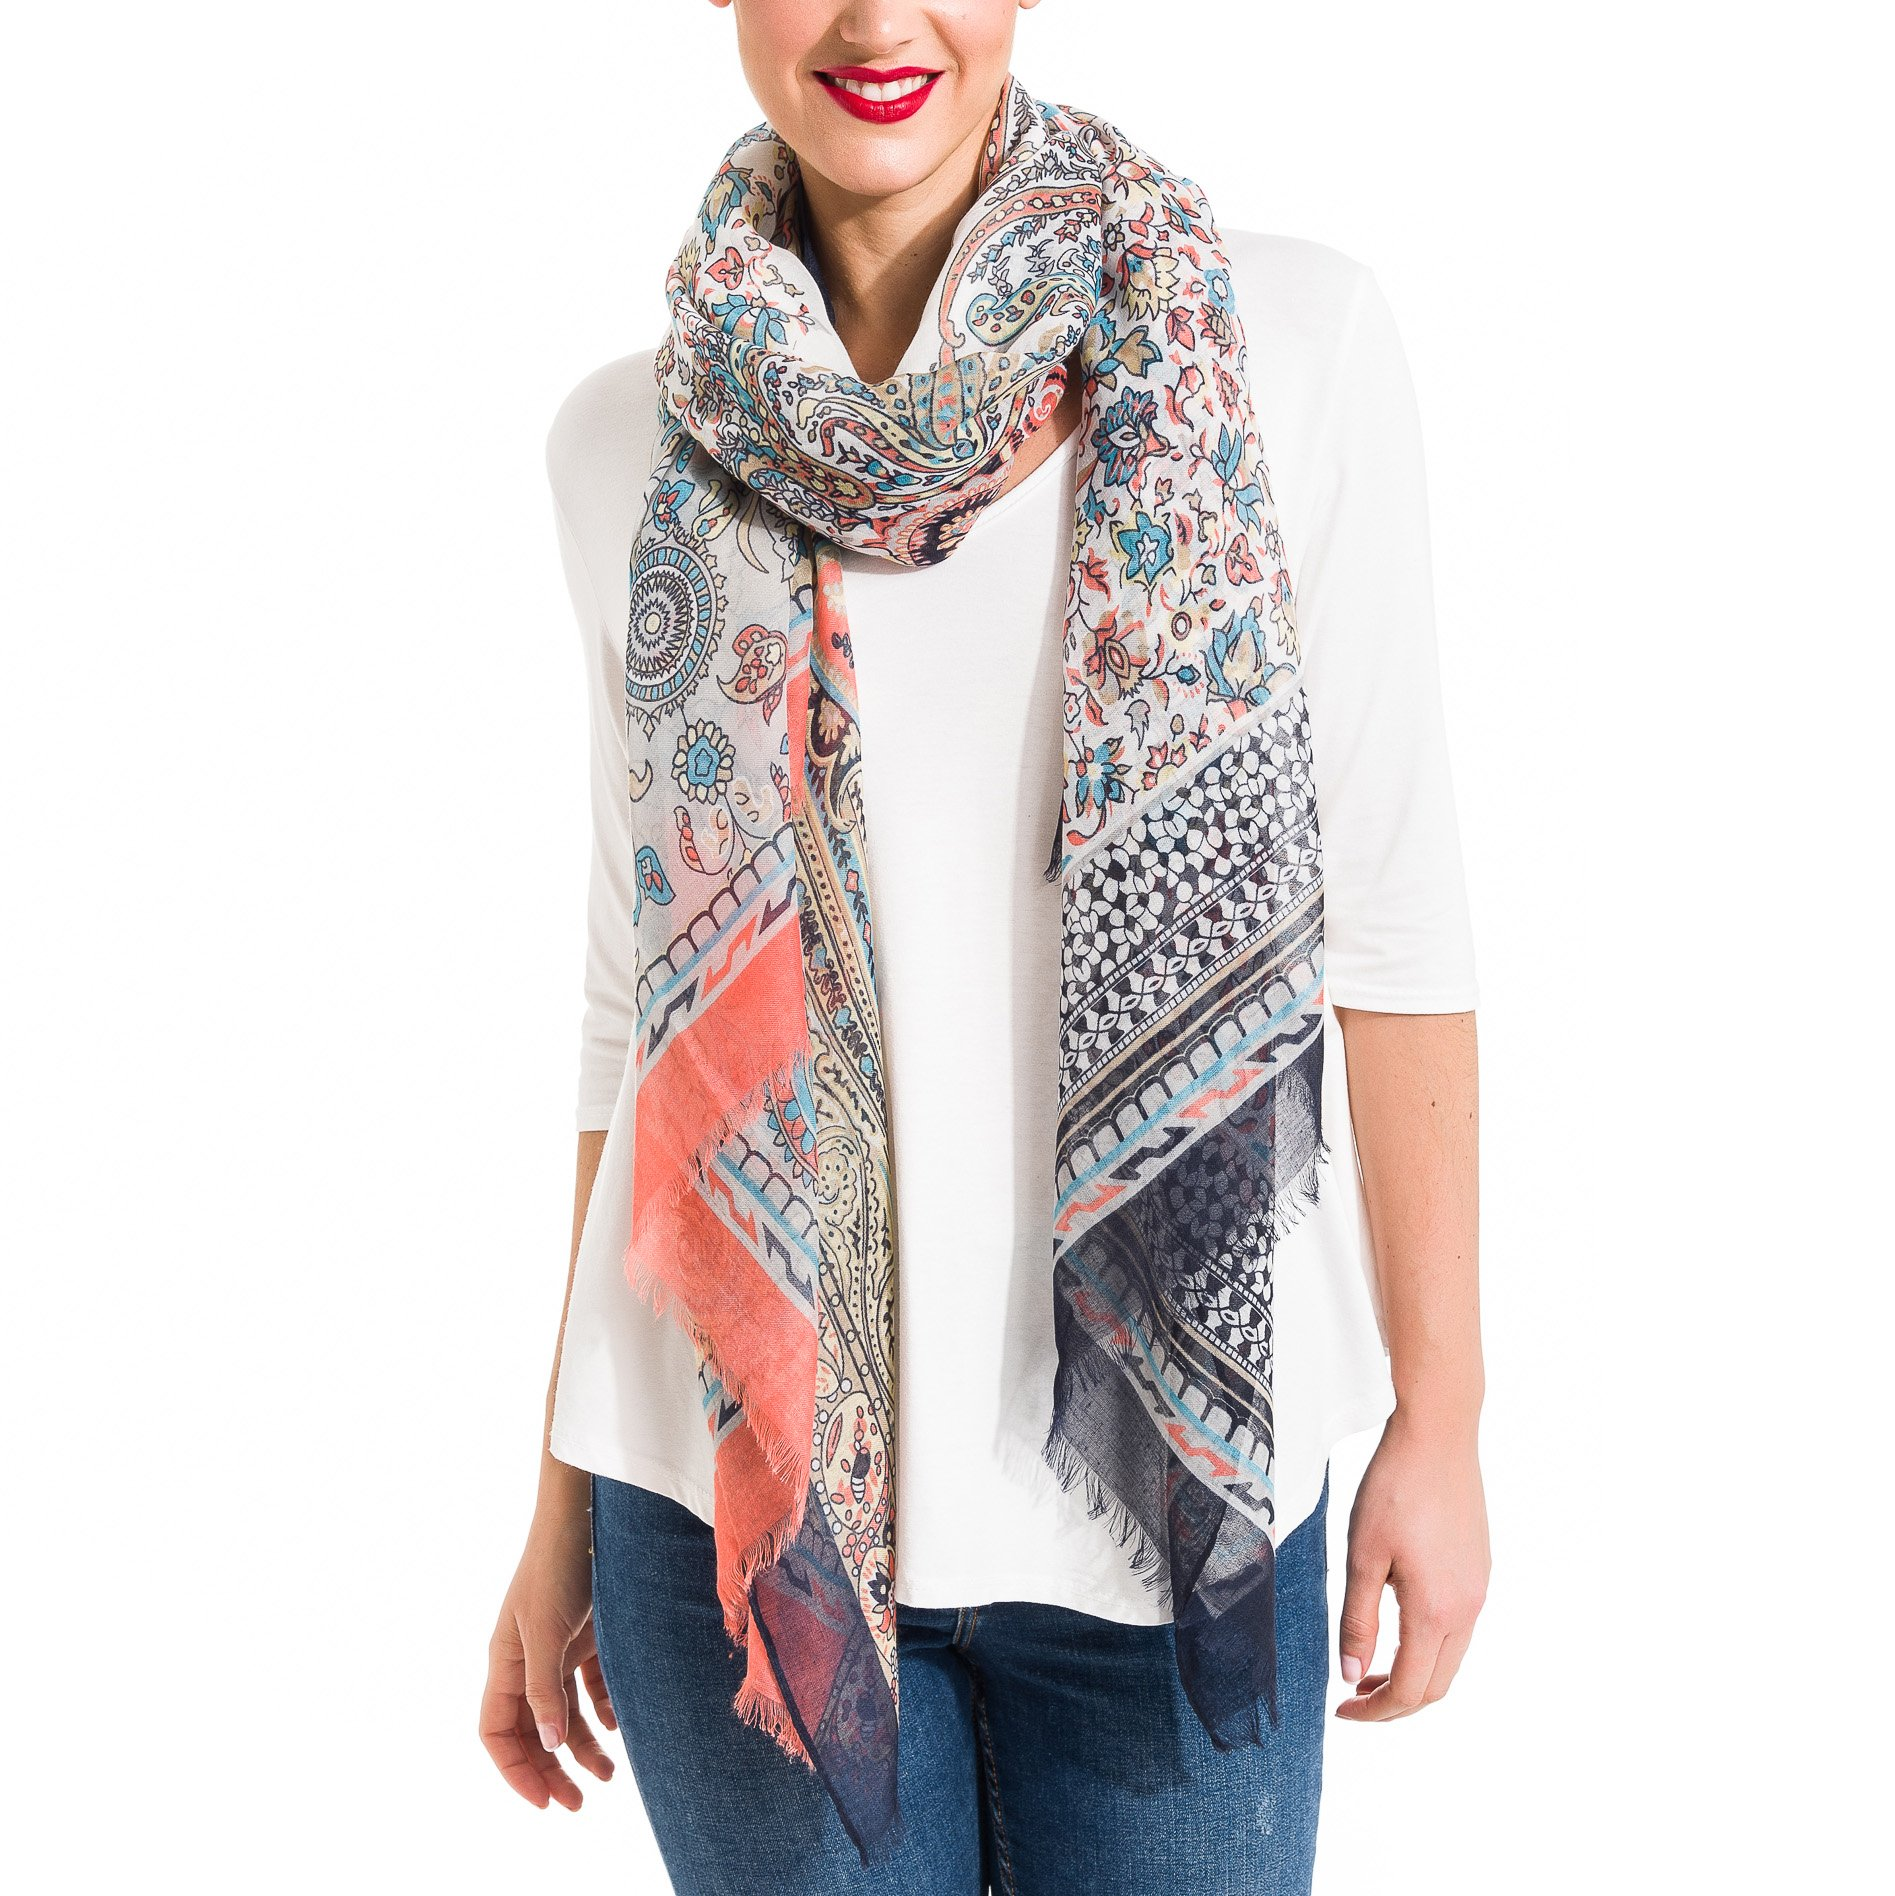 Scarf for Women Lightweight Paisley Fashion Fall Winter Scarves Shawl Wraps (P042-7)